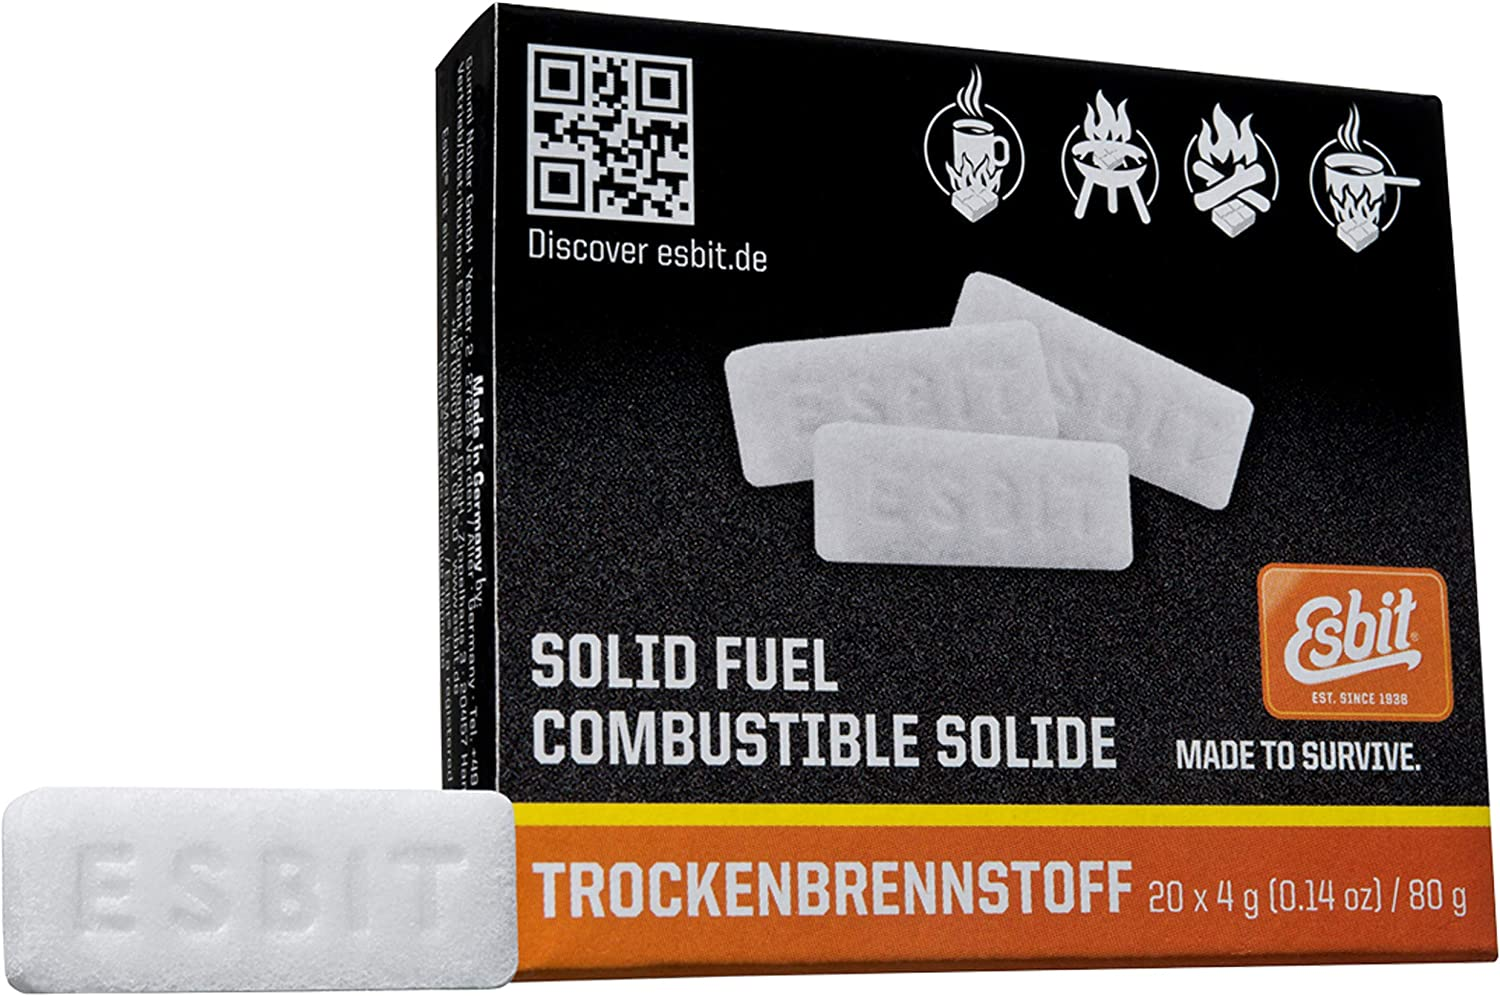 Esbit 1300-Degree Smokeless Solid Fuel Tablets for Hobby, Outdoor, and Emergency Use, 20 Pieces Each 4g